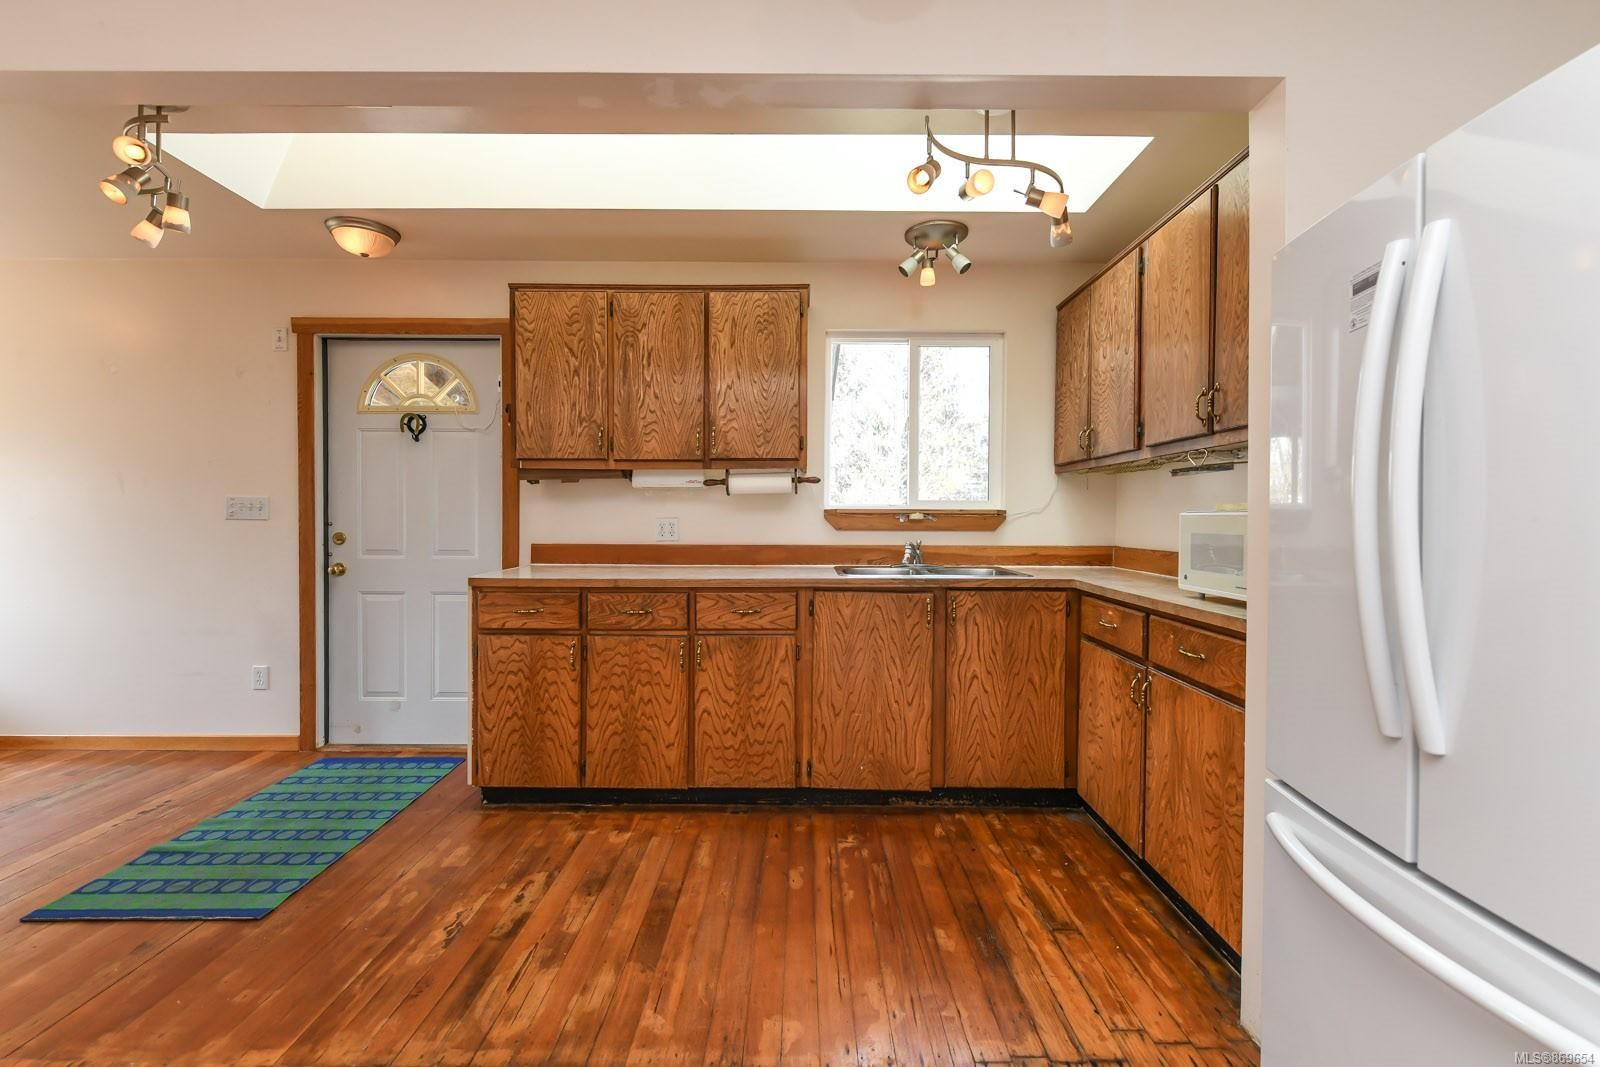 Photo 9: Photos: 4712 Cumberland Rd in : CV Cumberland House for sale (Comox Valley)  : MLS®# 869654